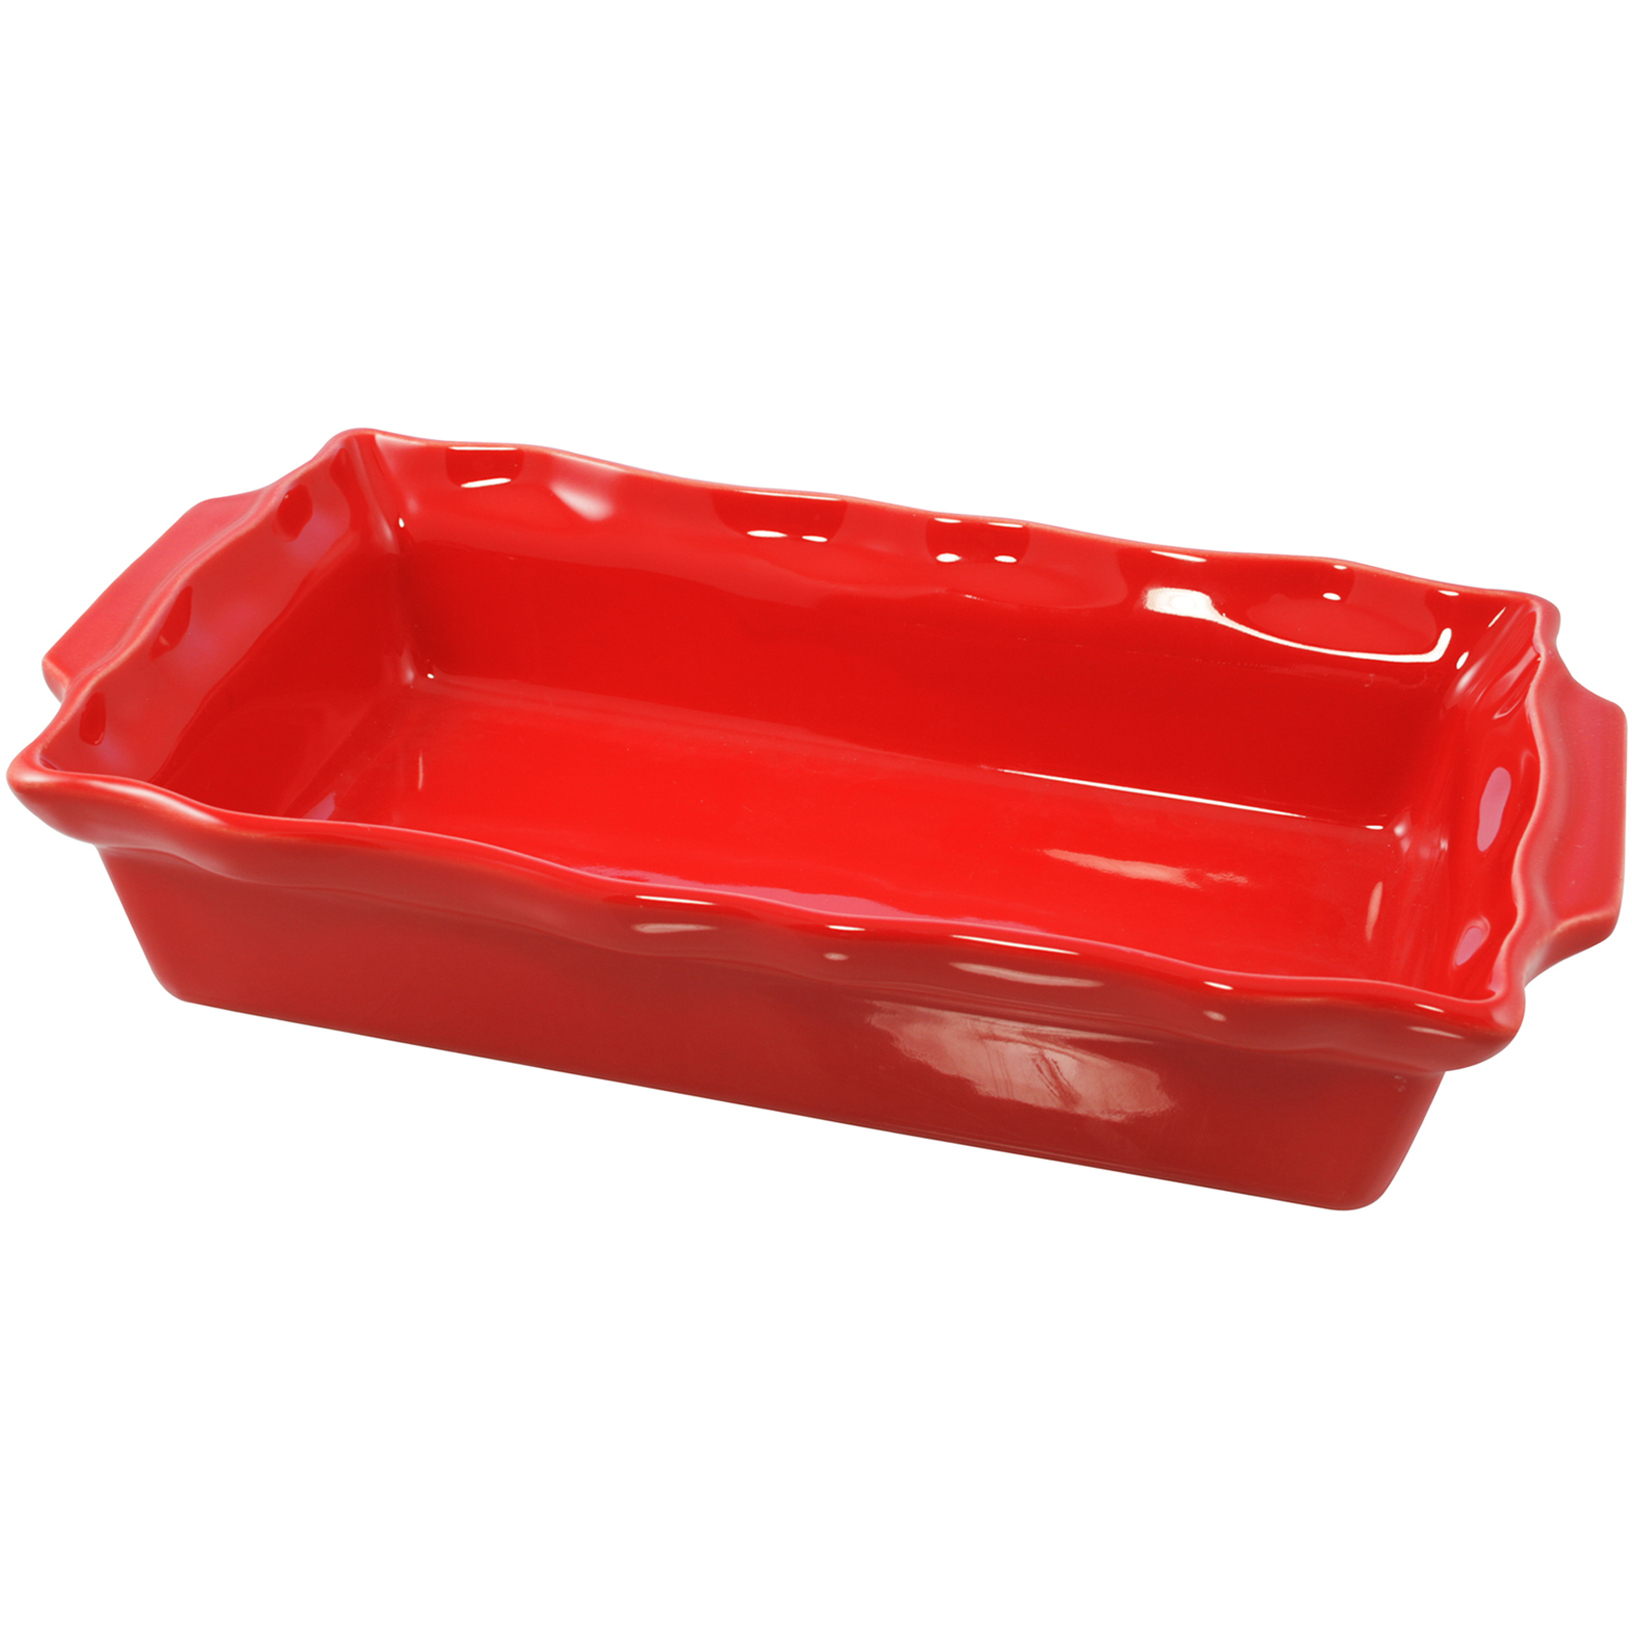 Le Cordon Bleu Paris By Swissmar Rectangular Rouge Ceramic 5.3 Quart Roasting Dish